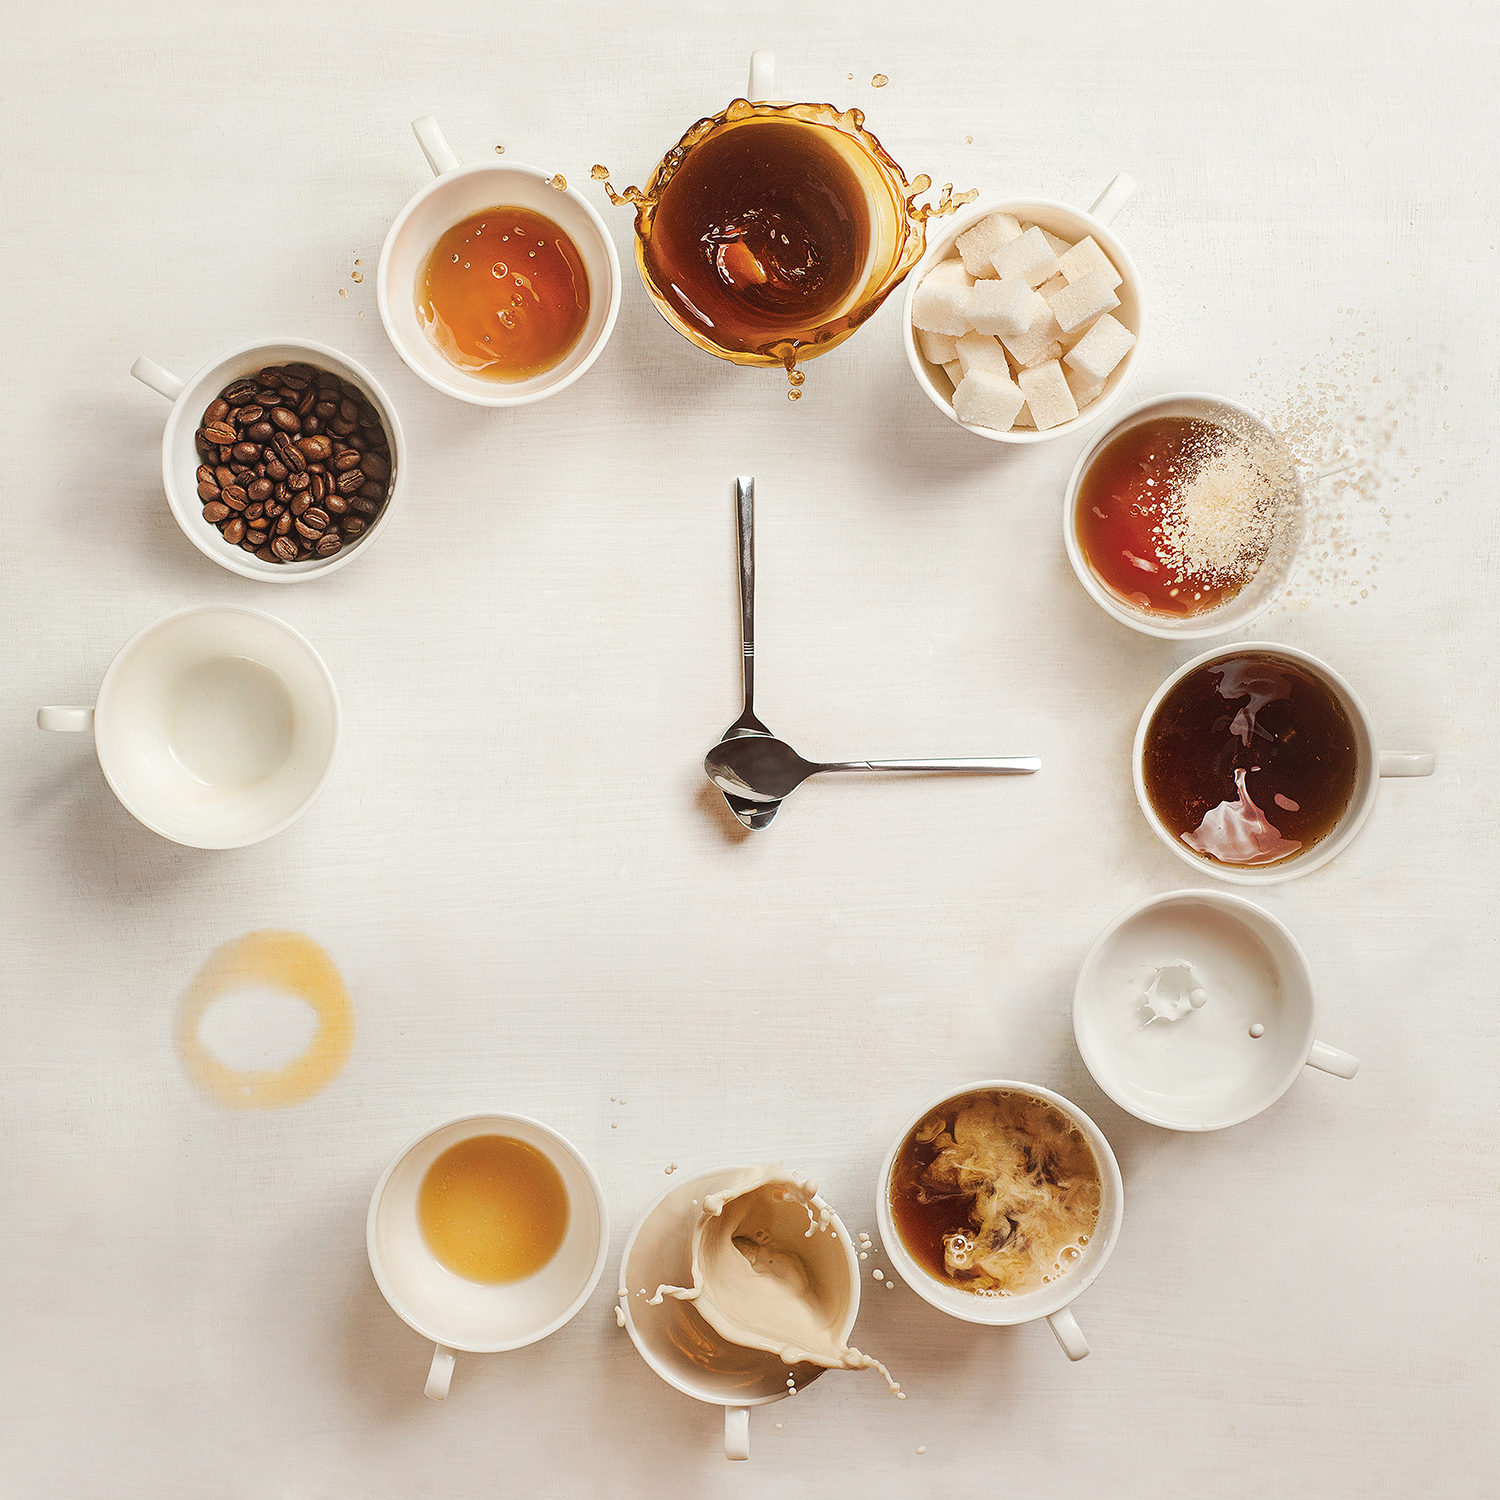 two spoons positioned like clock hands in the middle of a circle made of mugs with various coffee types